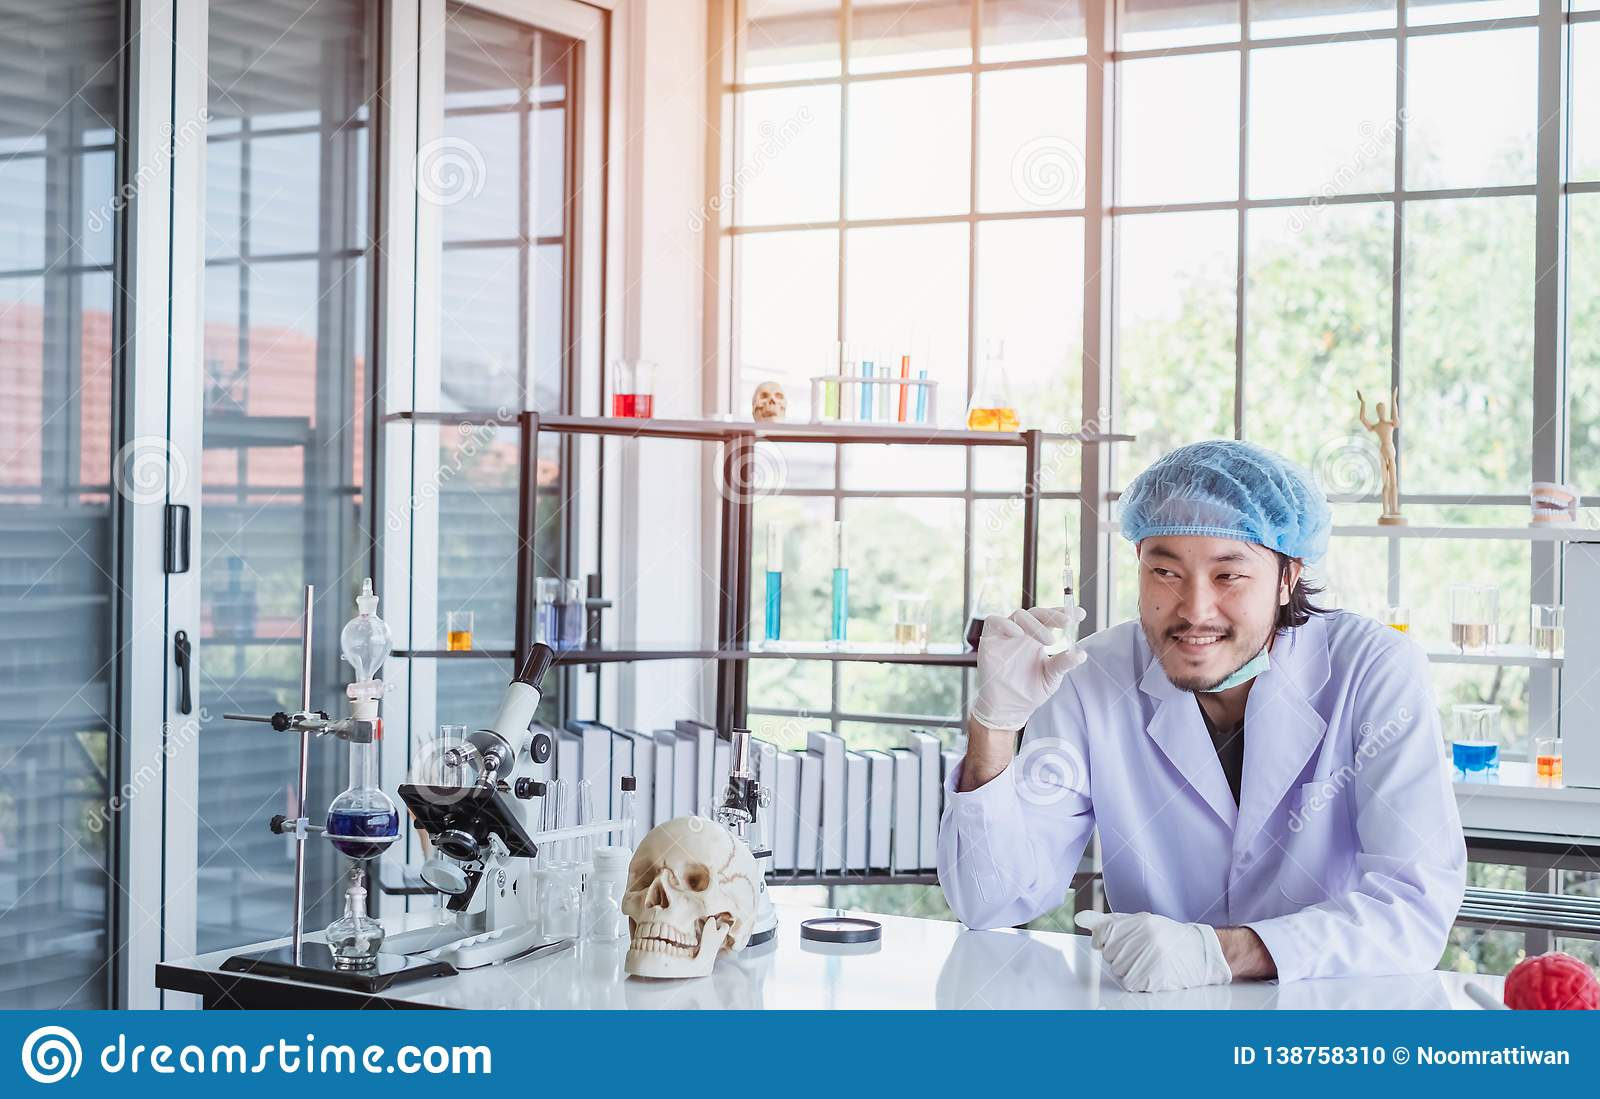 A happy male scientist showing the successful results of his experiment in a science lab